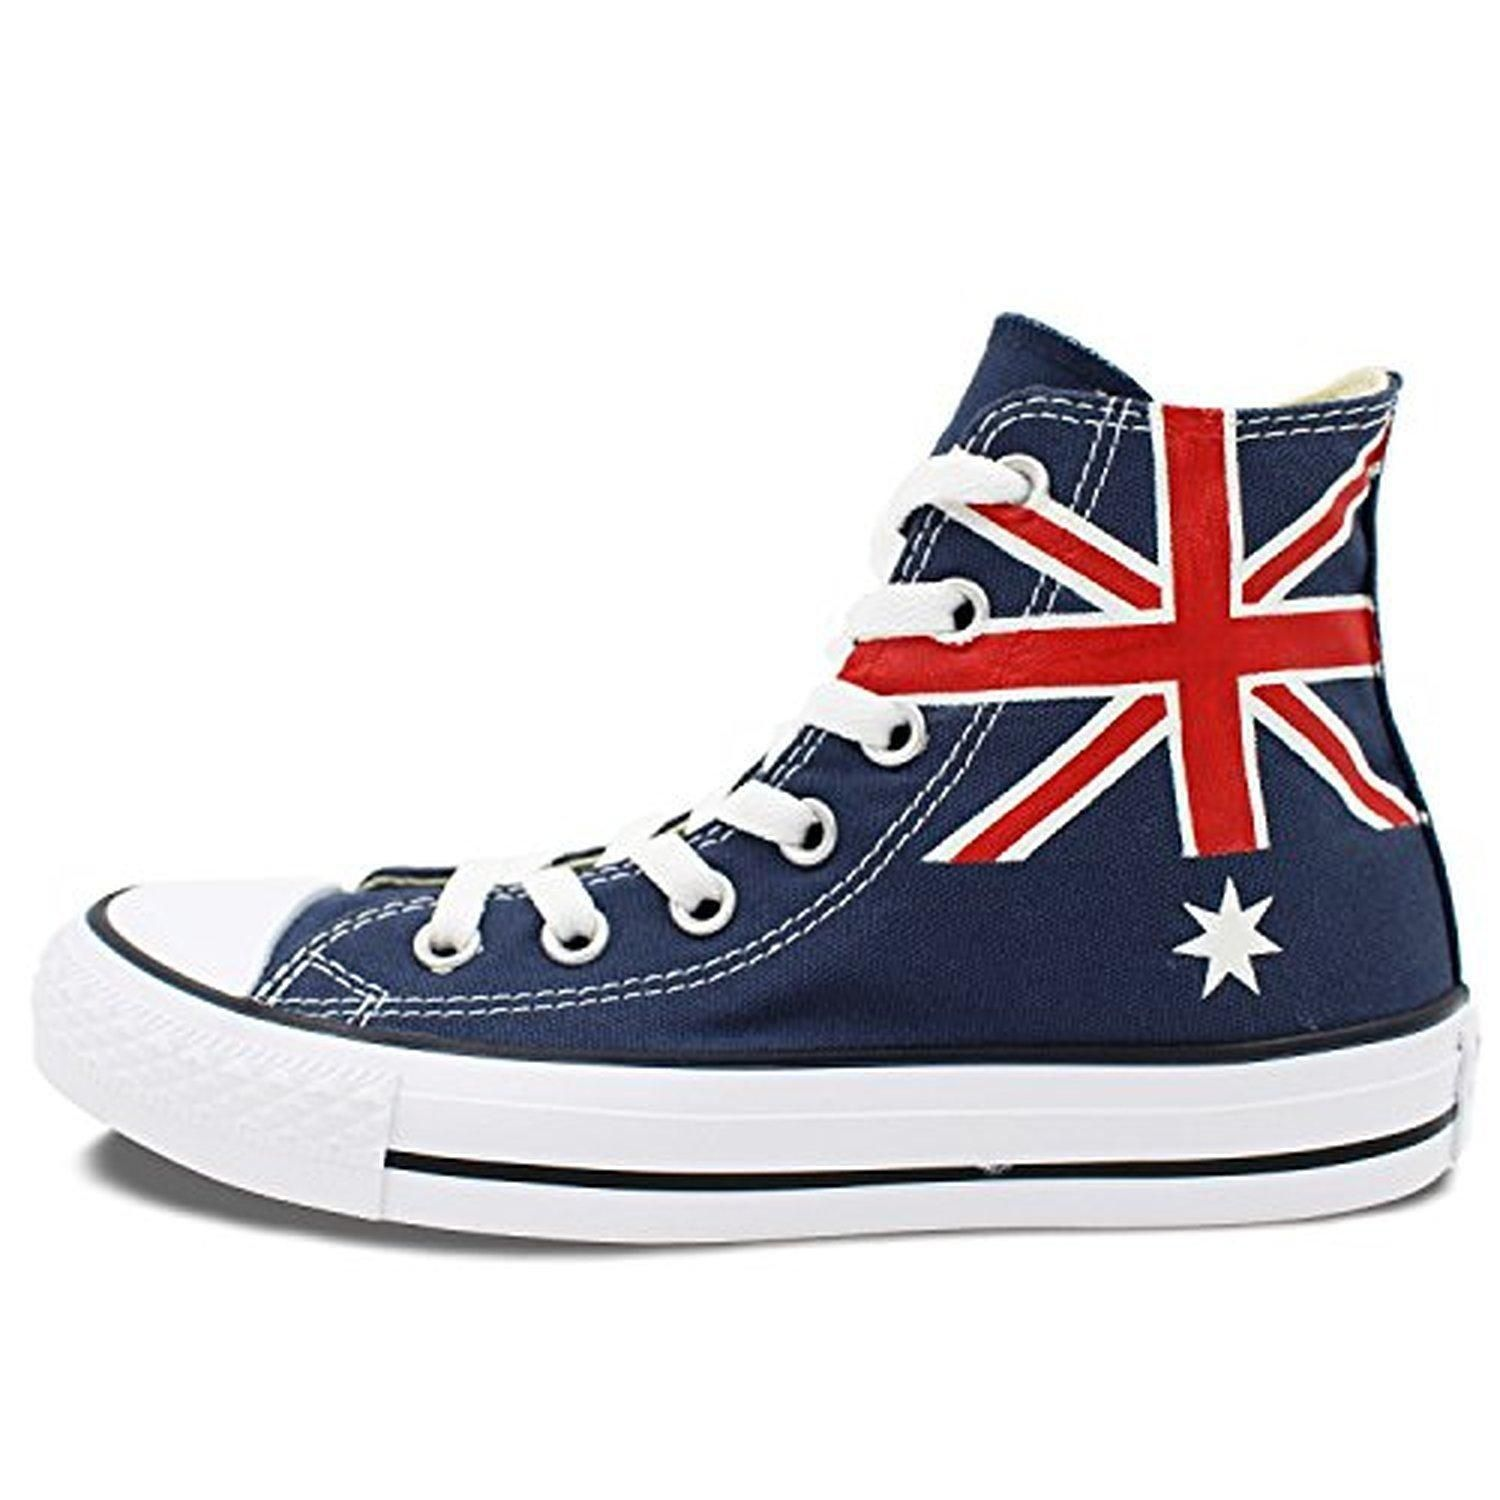 Wen's Studio Washable Hand Painted Converse Shoes Australia Flag High Top Canvas Sneaker - Brought to you by Avarsha.com